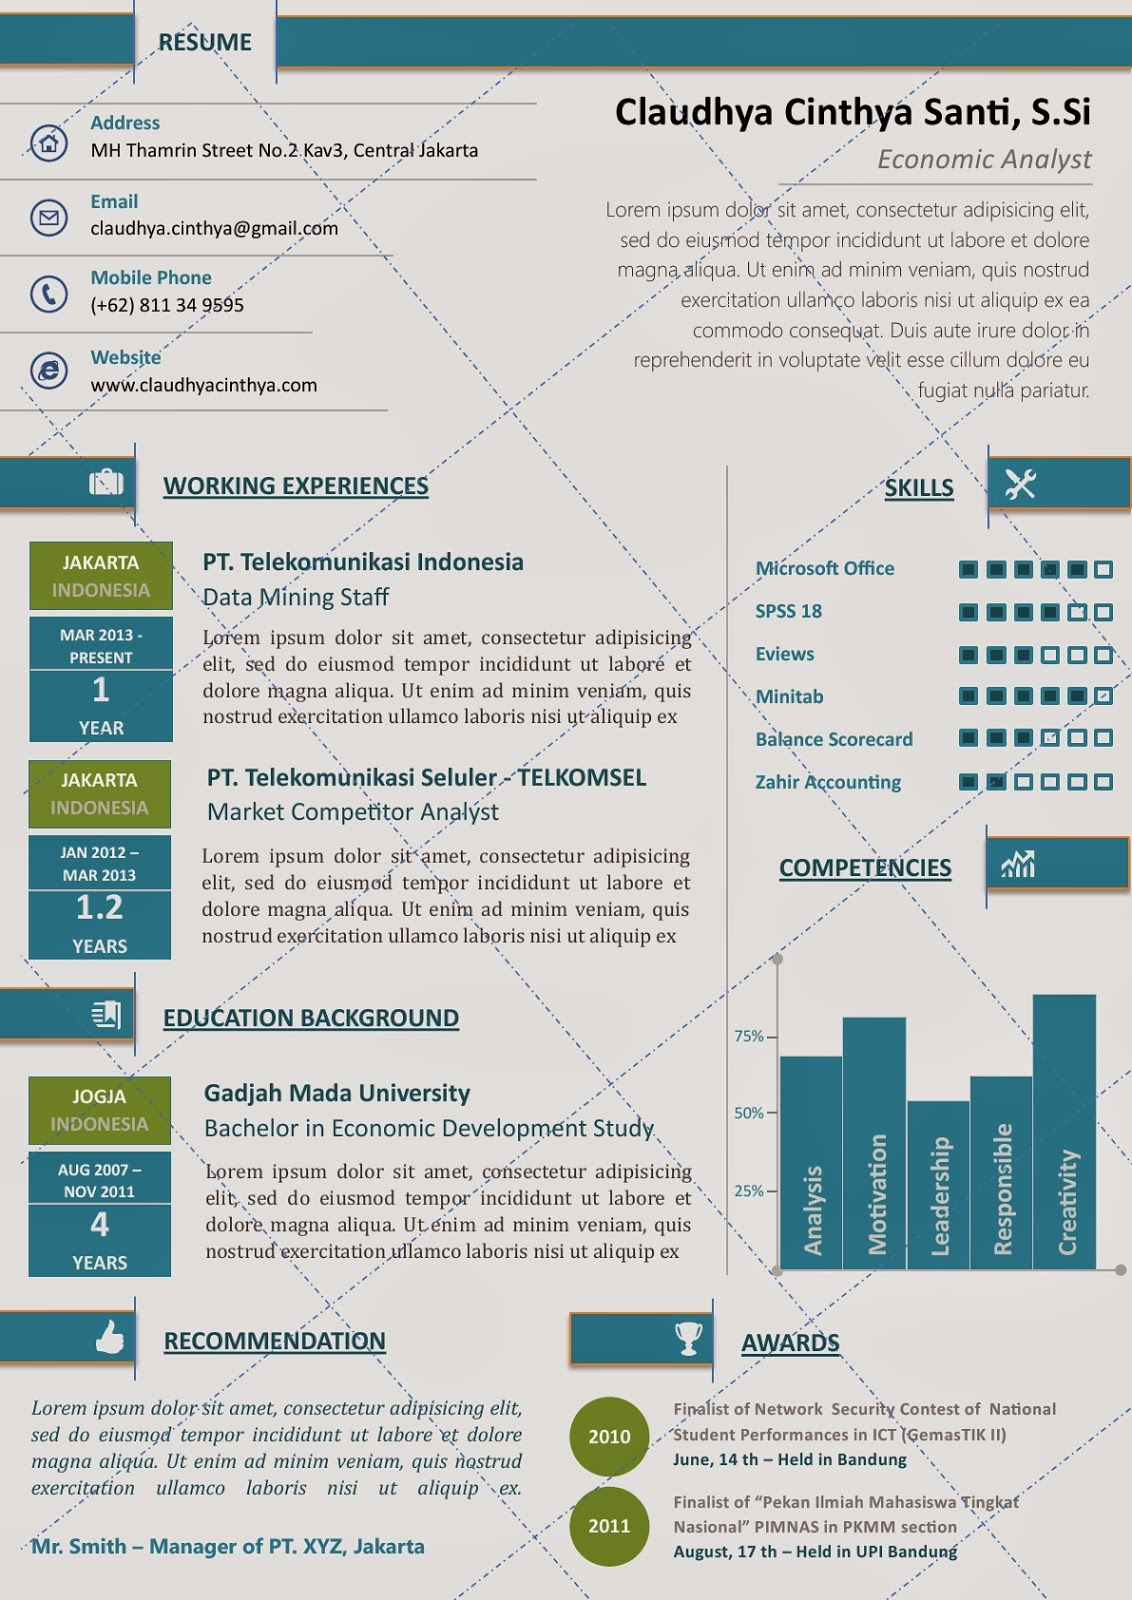 Free Infographic Resume Templates For Ms Word   ChesslinksInfo